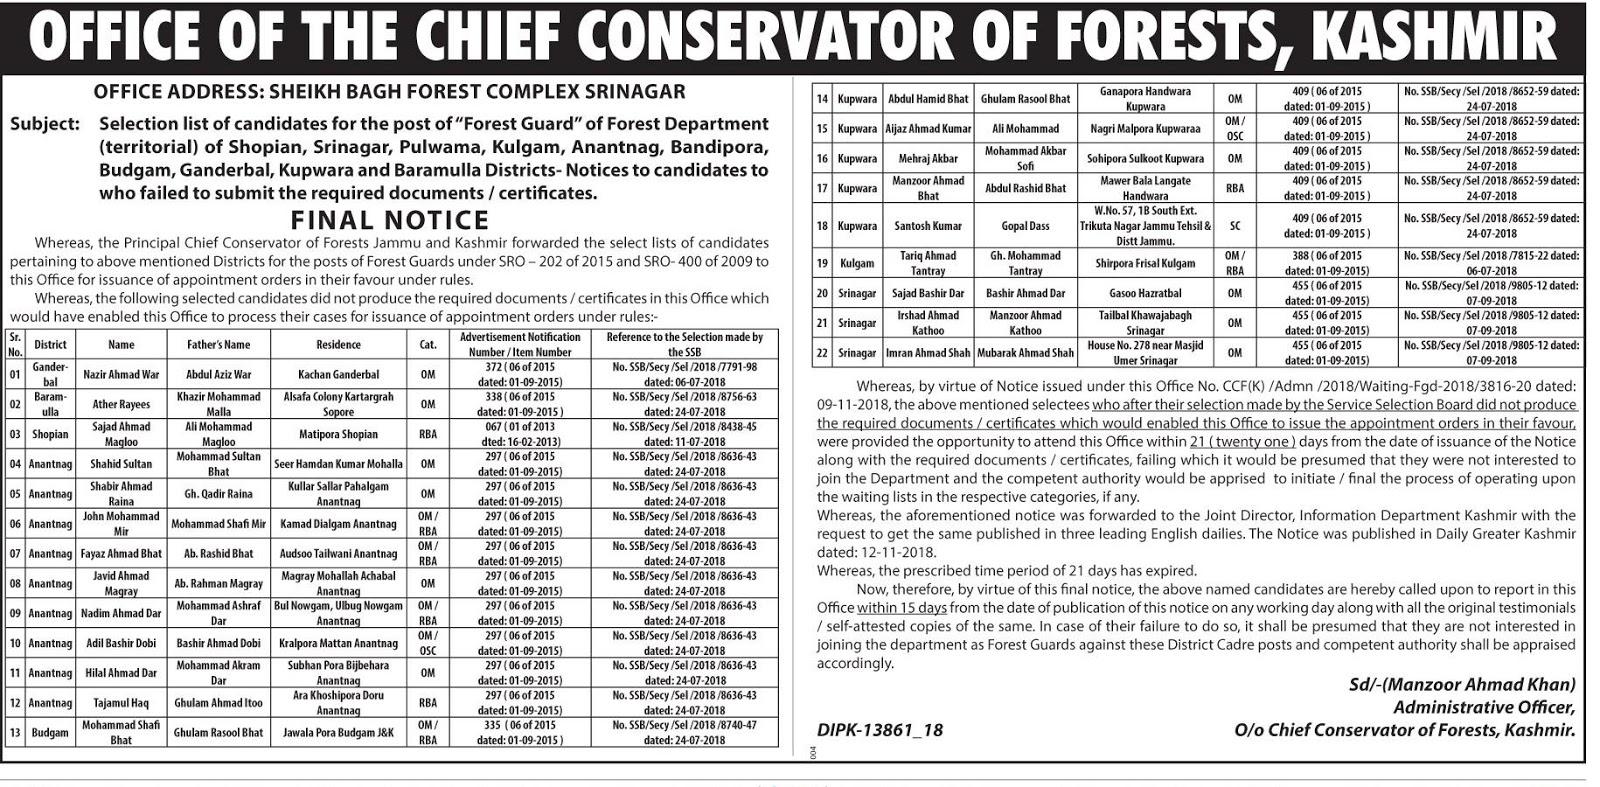 Selection List of candidates for Forest Guard posts in Forest Department (District Wise)